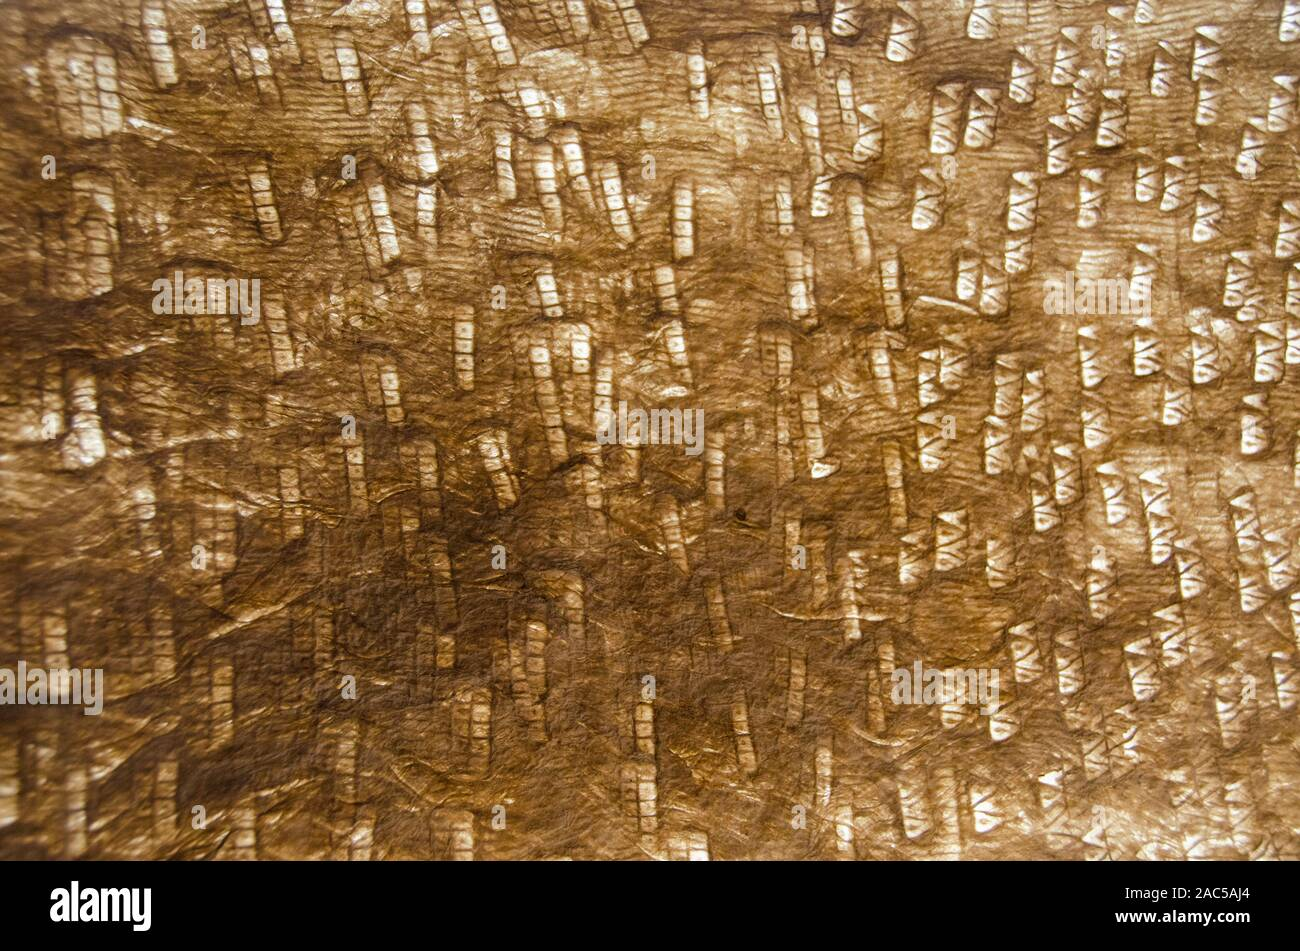 A close-up view of kapa (or tapa) made from paper mulberry bark by Roen Hufford, Big Island. Stock Photo